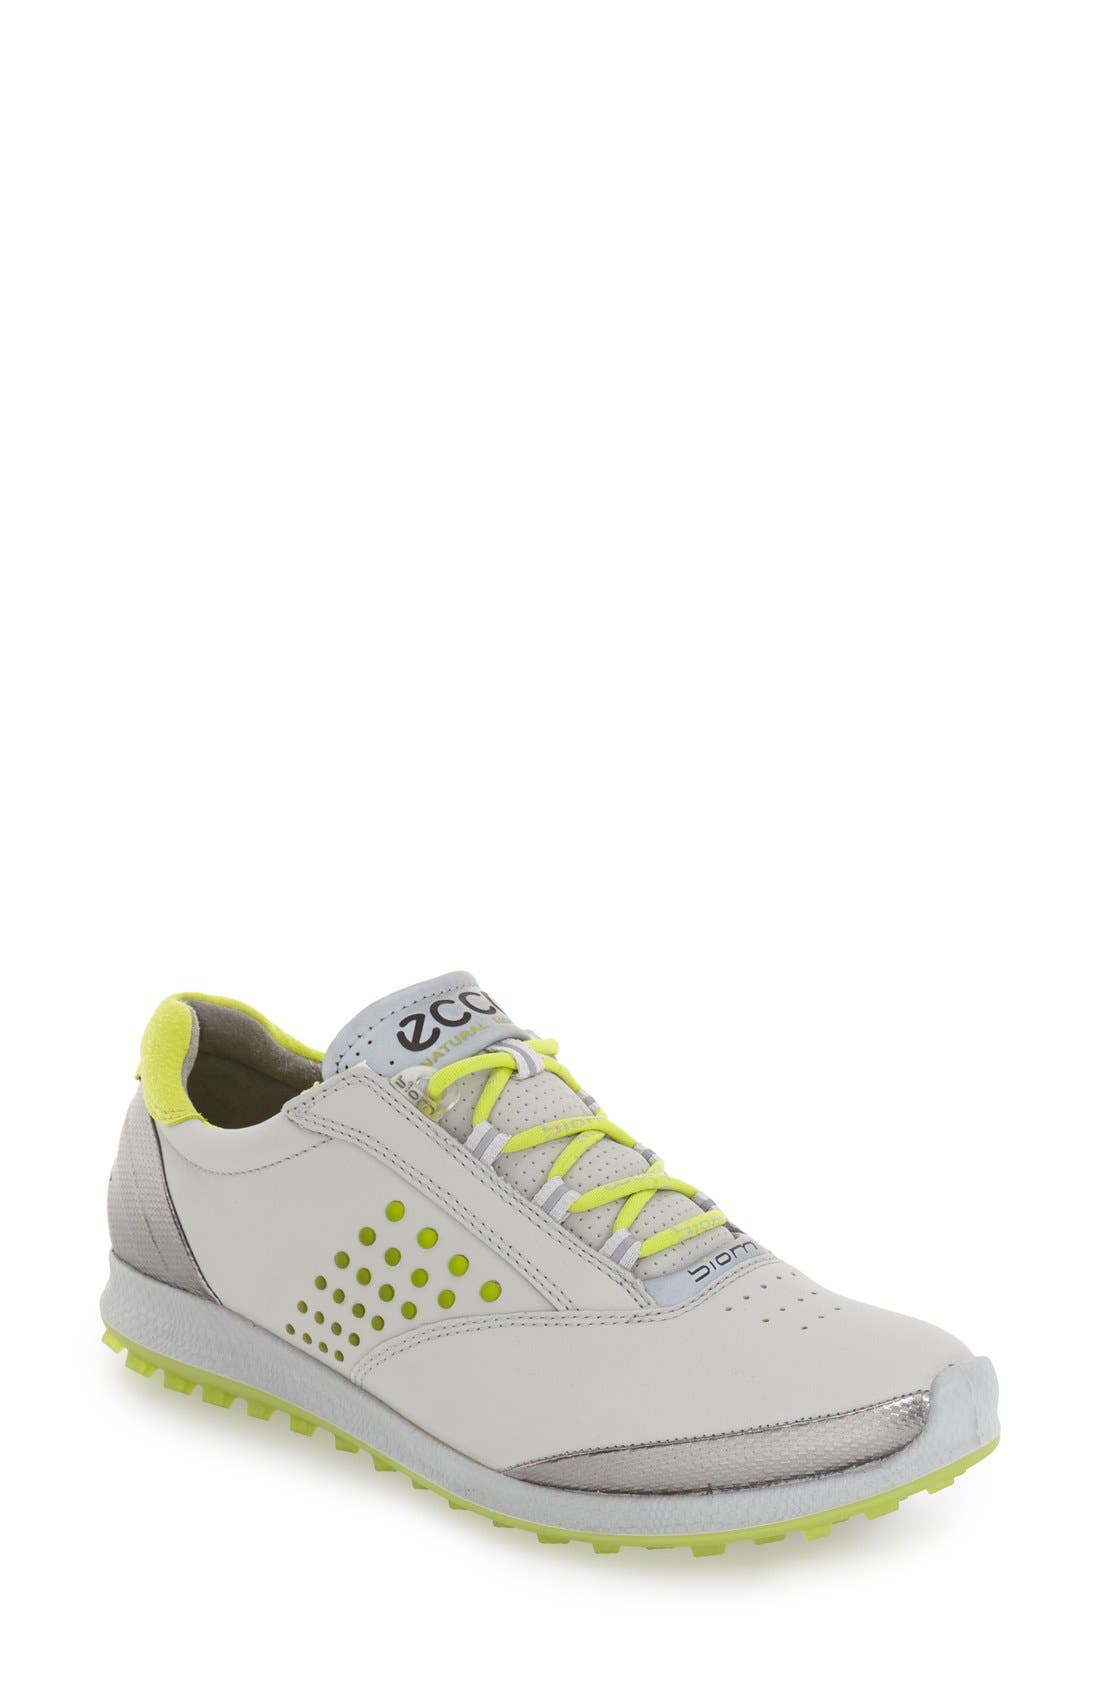 ECCO 'BIOM' Hydromax® Waterproof Golf Shoe (Women)